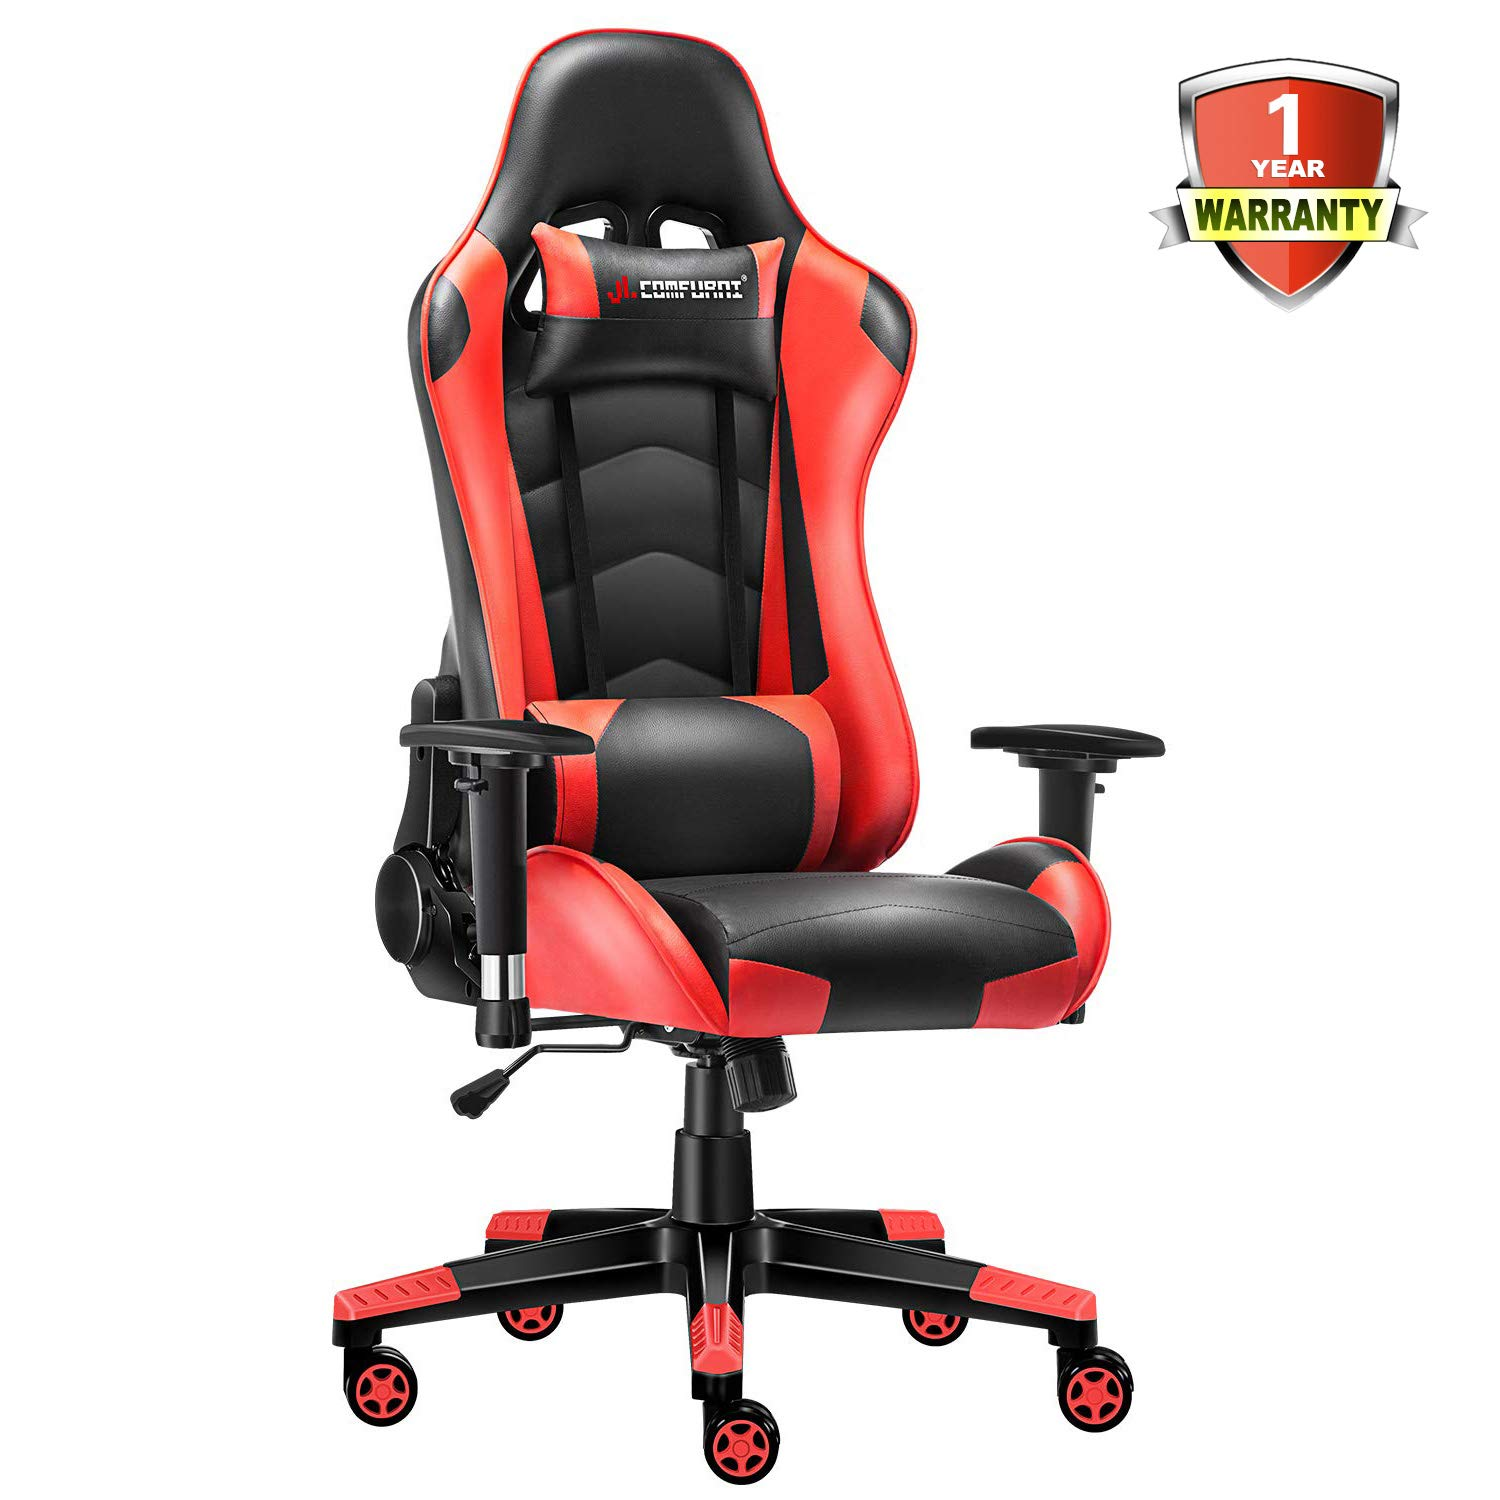 JL Comfurni Gaming Chair Racing Style Ergonomic Swivel Computer Office Desk Chairs Adjustable Height Reclining High-Back with Lumbar Cushion Headrest Leather Gamer Chair Red